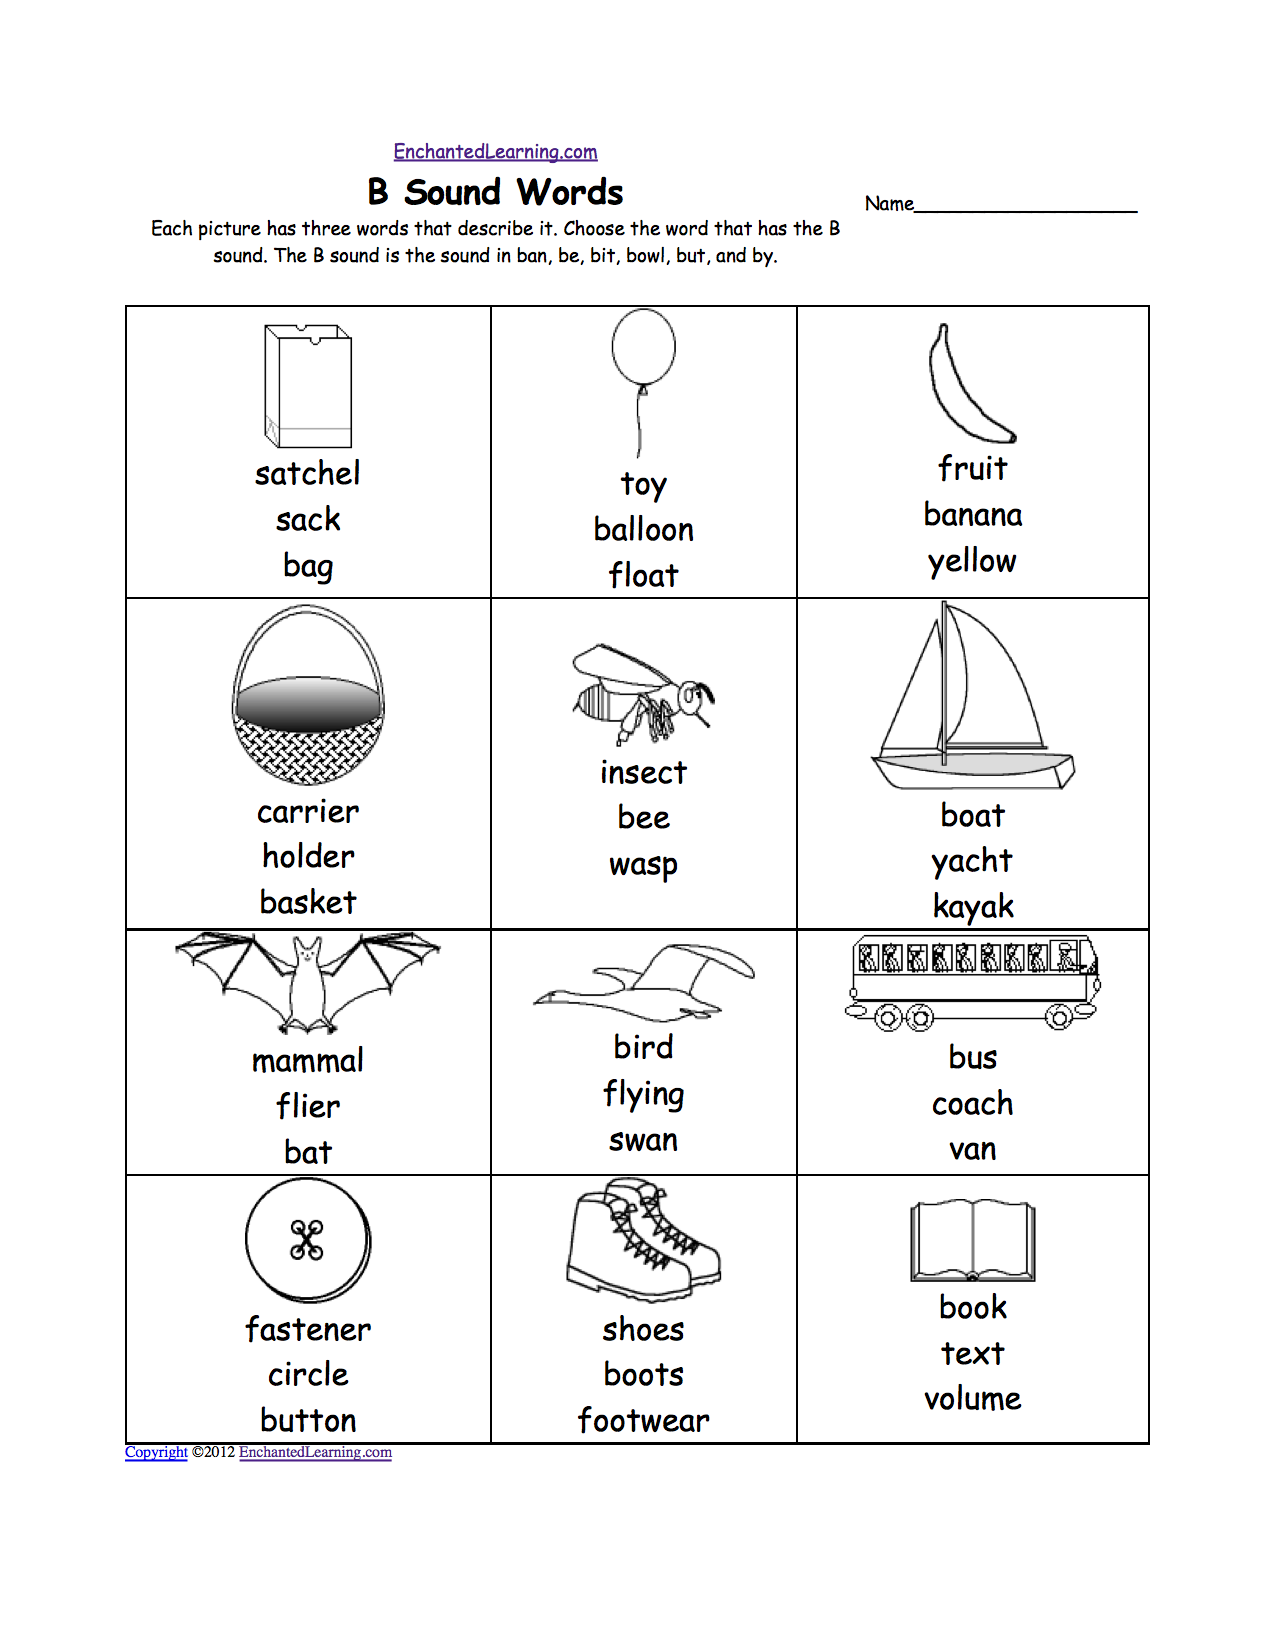 Aldiablosus  Prepossessing Phonics Worksheets Multiple Choice Worksheets To Print  With Marvelous Quotbquot Sound Phonics Worksheet Multiple Choice Each Picture Has Three Words That Describe It Choose The Word That Has A Quotbquot Sound The Quotbquot Sound Is The Sound  With Awesome Adding  Worksheets Also Adding Worksheets Ks In Addition Nouns And Adjectives Worksheet And Geography World Map Worksheet As Well As  Times Tables Worksheets Printable Additionally Column Addition Money Worksheets From Enchantedlearningcom With Aldiablosus  Marvelous Phonics Worksheets Multiple Choice Worksheets To Print  With Awesome Quotbquot Sound Phonics Worksheet Multiple Choice Each Picture Has Three Words That Describe It Choose The Word That Has A Quotbquot Sound The Quotbquot Sound Is The Sound  And Prepossessing Adding  Worksheets Also Adding Worksheets Ks In Addition Nouns And Adjectives Worksheet From Enchantedlearningcom